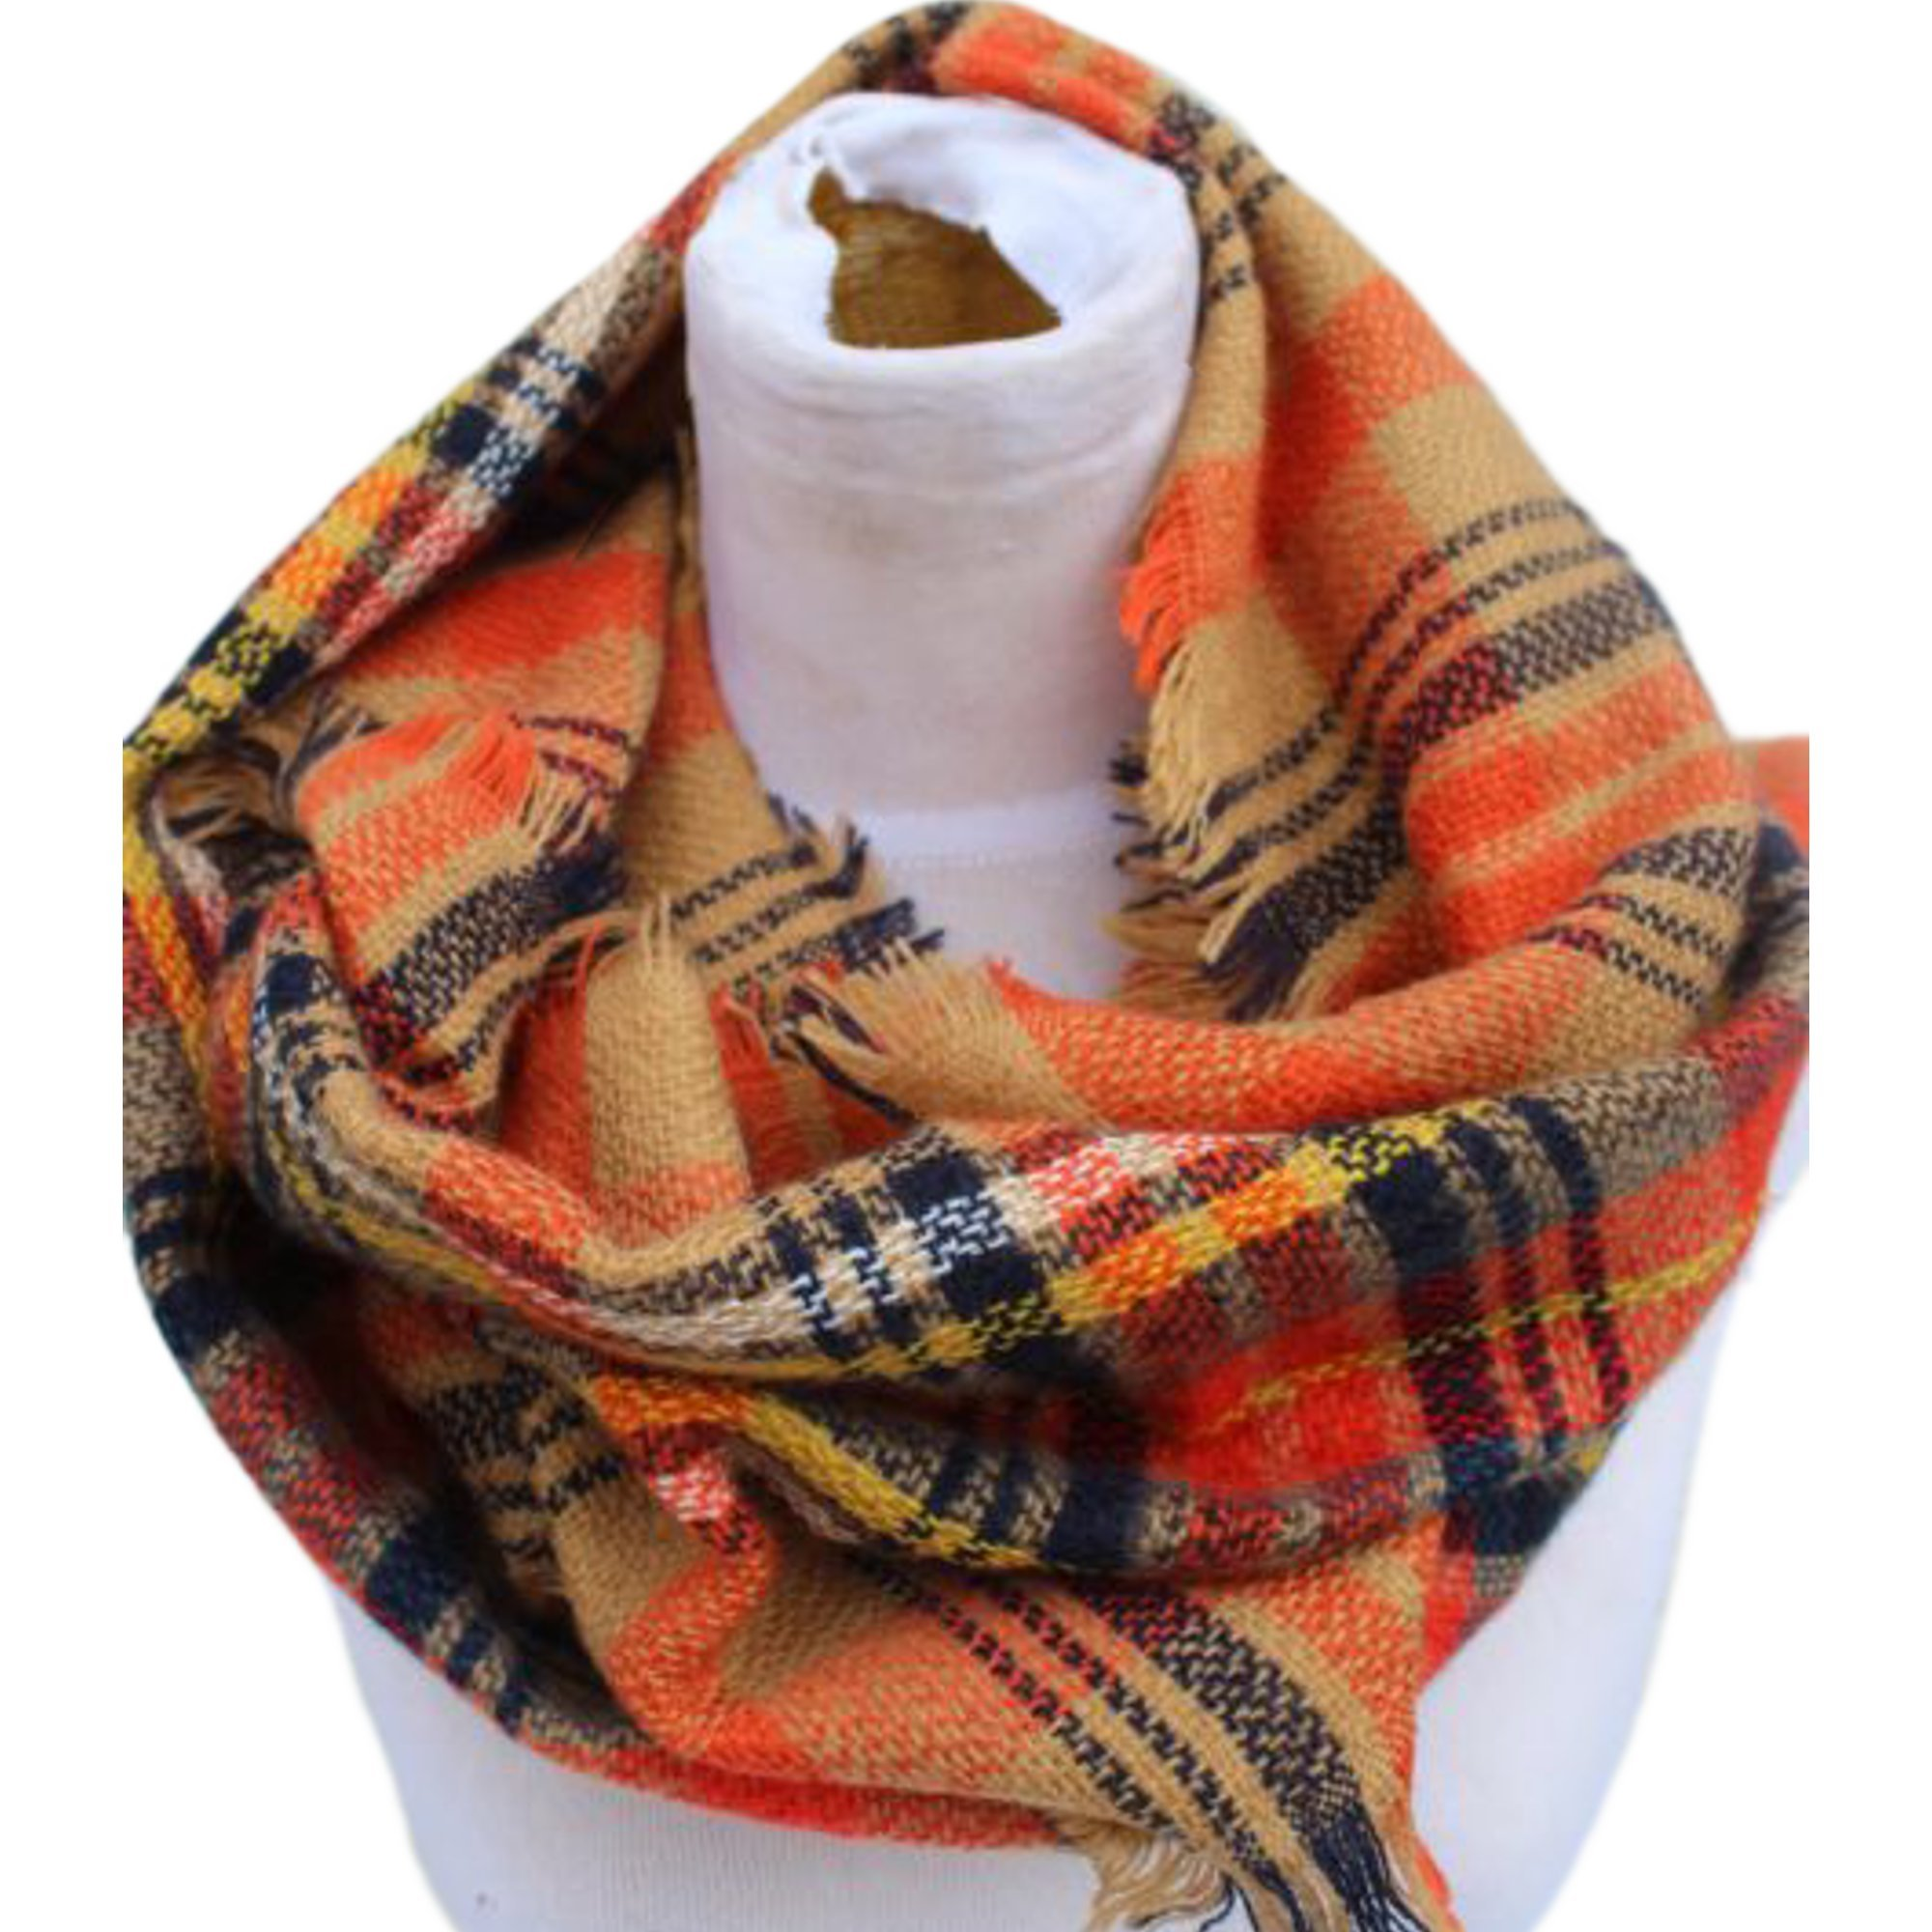 Epic Brand Infinity Scarf Collection for Men and Women | Comfortable Plaid Tartan Cashmere Blanket Circle Winter Scarves (Plaid Orange/Navy Blue) by Epic Brand (Image #1)